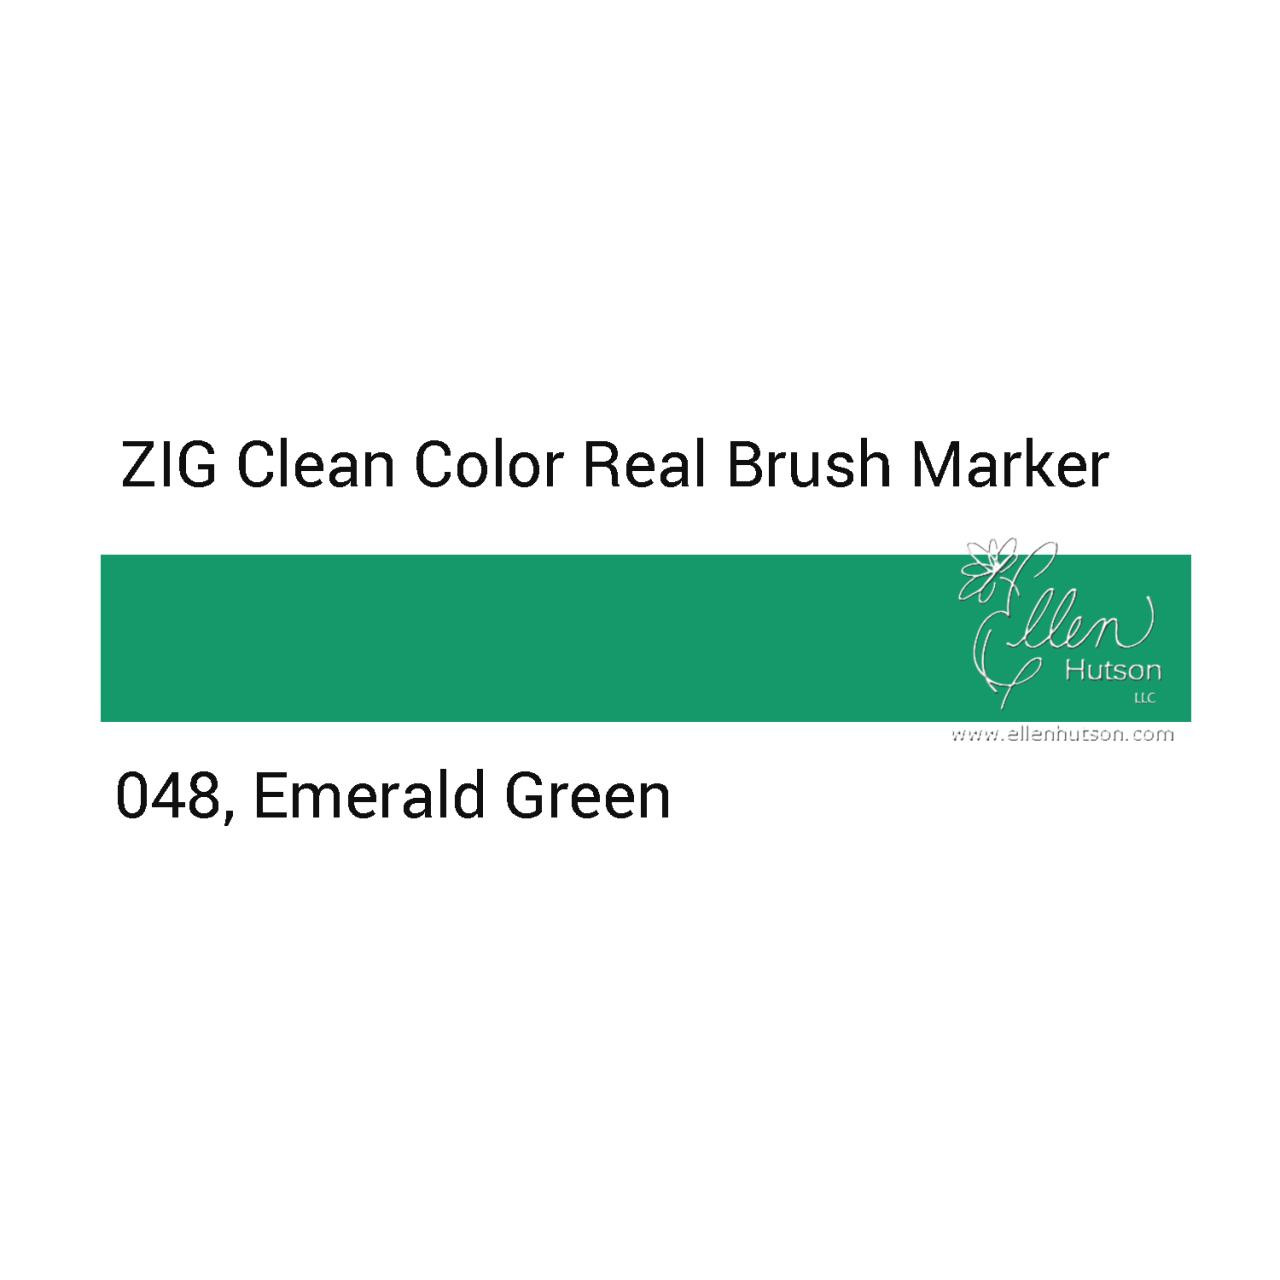 048 - Emerald Green, ZIG Clean Color Real Brush Marker -